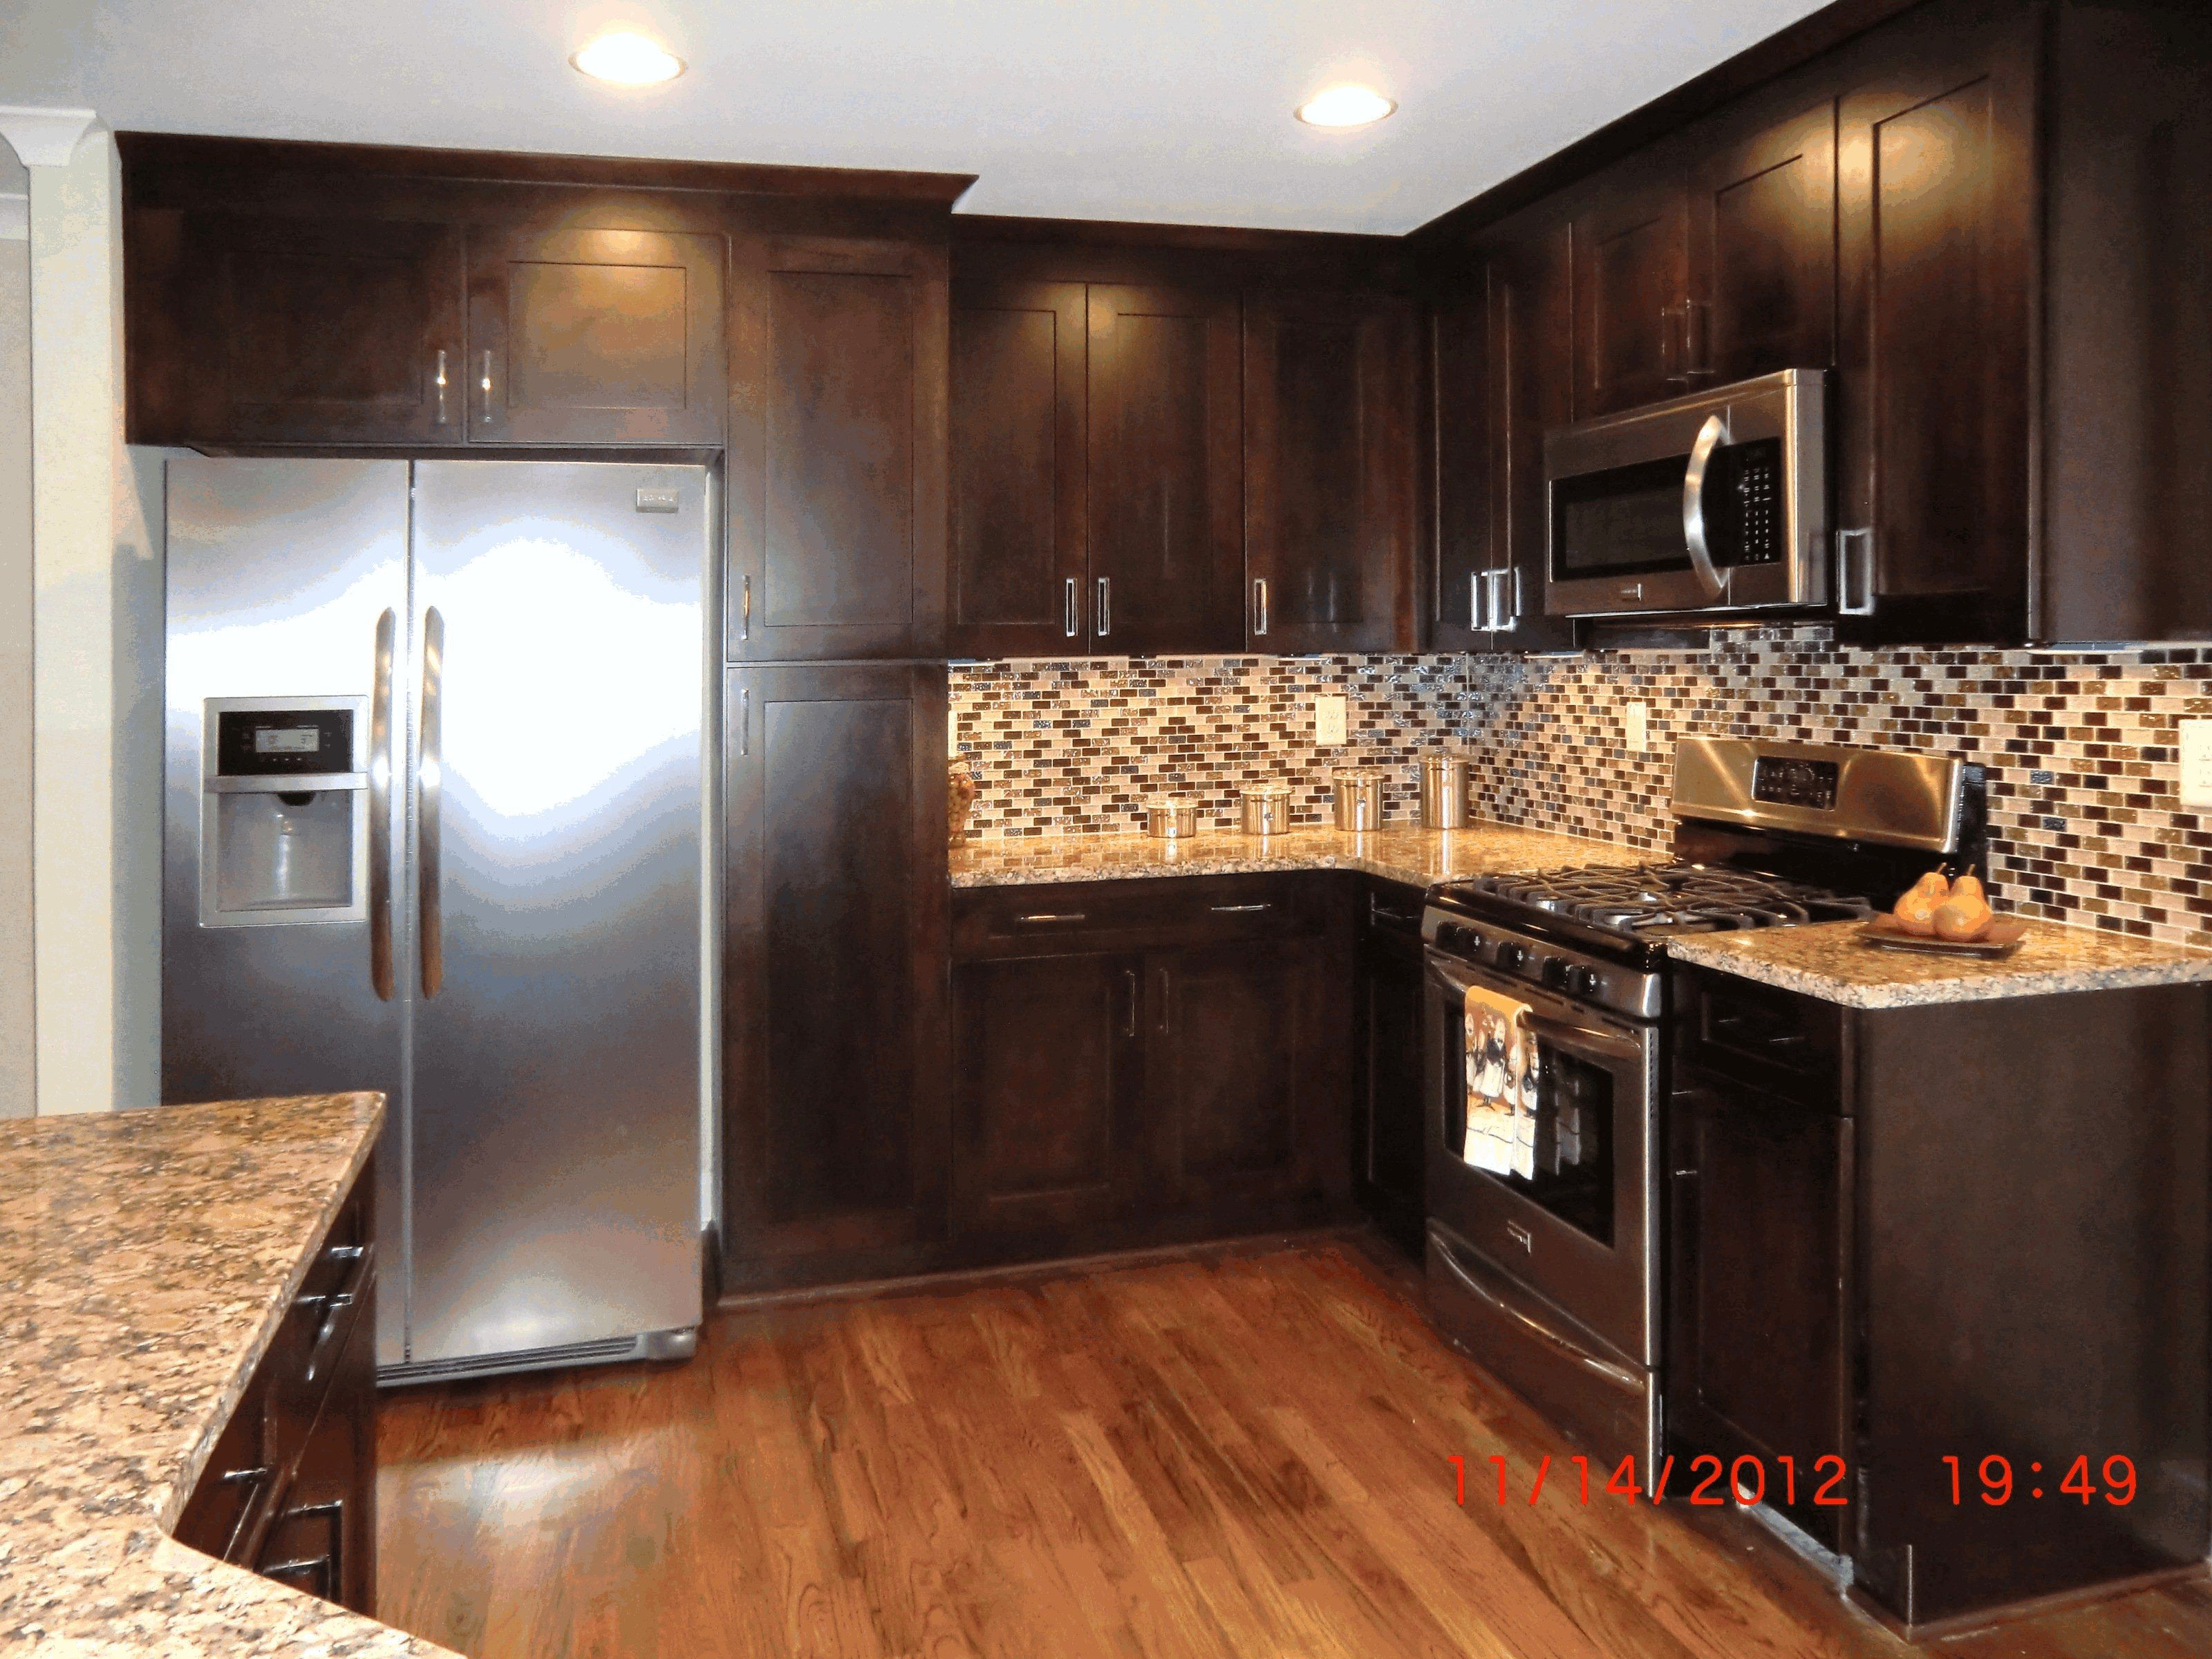 Kitchen Kitchen Cabinets Dark Top Light Bottom How To Position Recessed Lighting Shell D Dark Brown Kitchen Cabinets Dark Kitchen Cabinets Dark Brown Cabinets